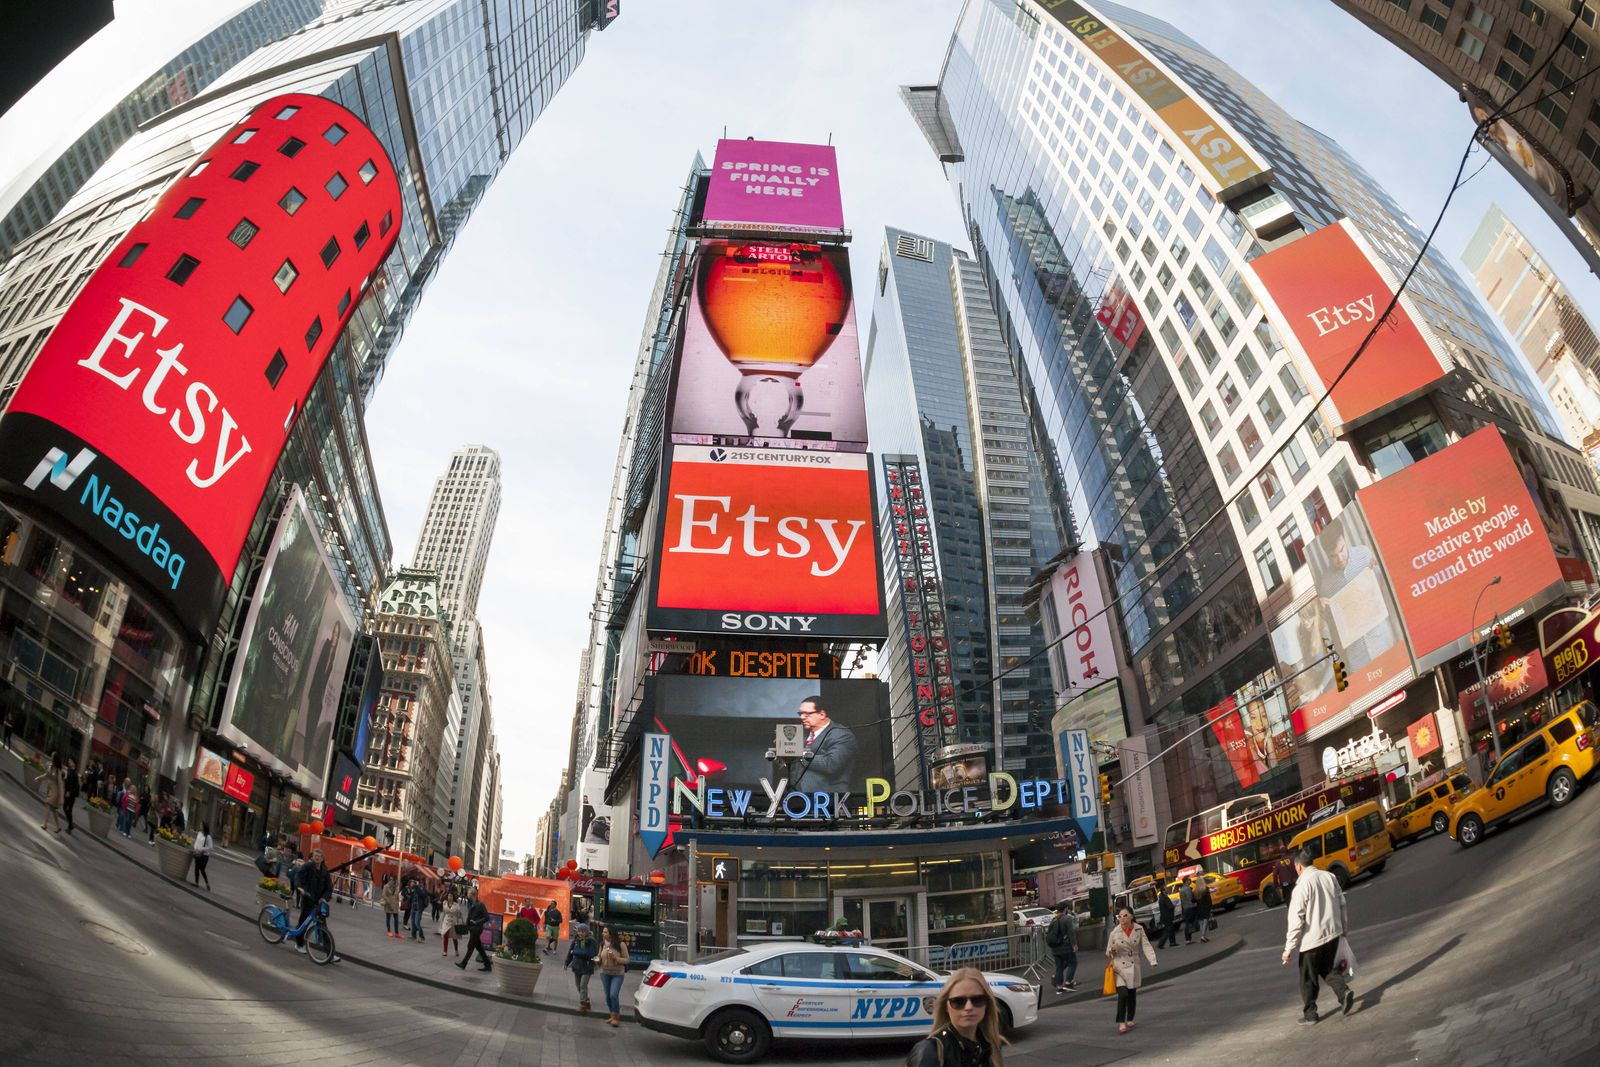 Etsy IPO debuts on NASDAQ Giant electronic billboards in Times Square and on the NASDAQ commemorate